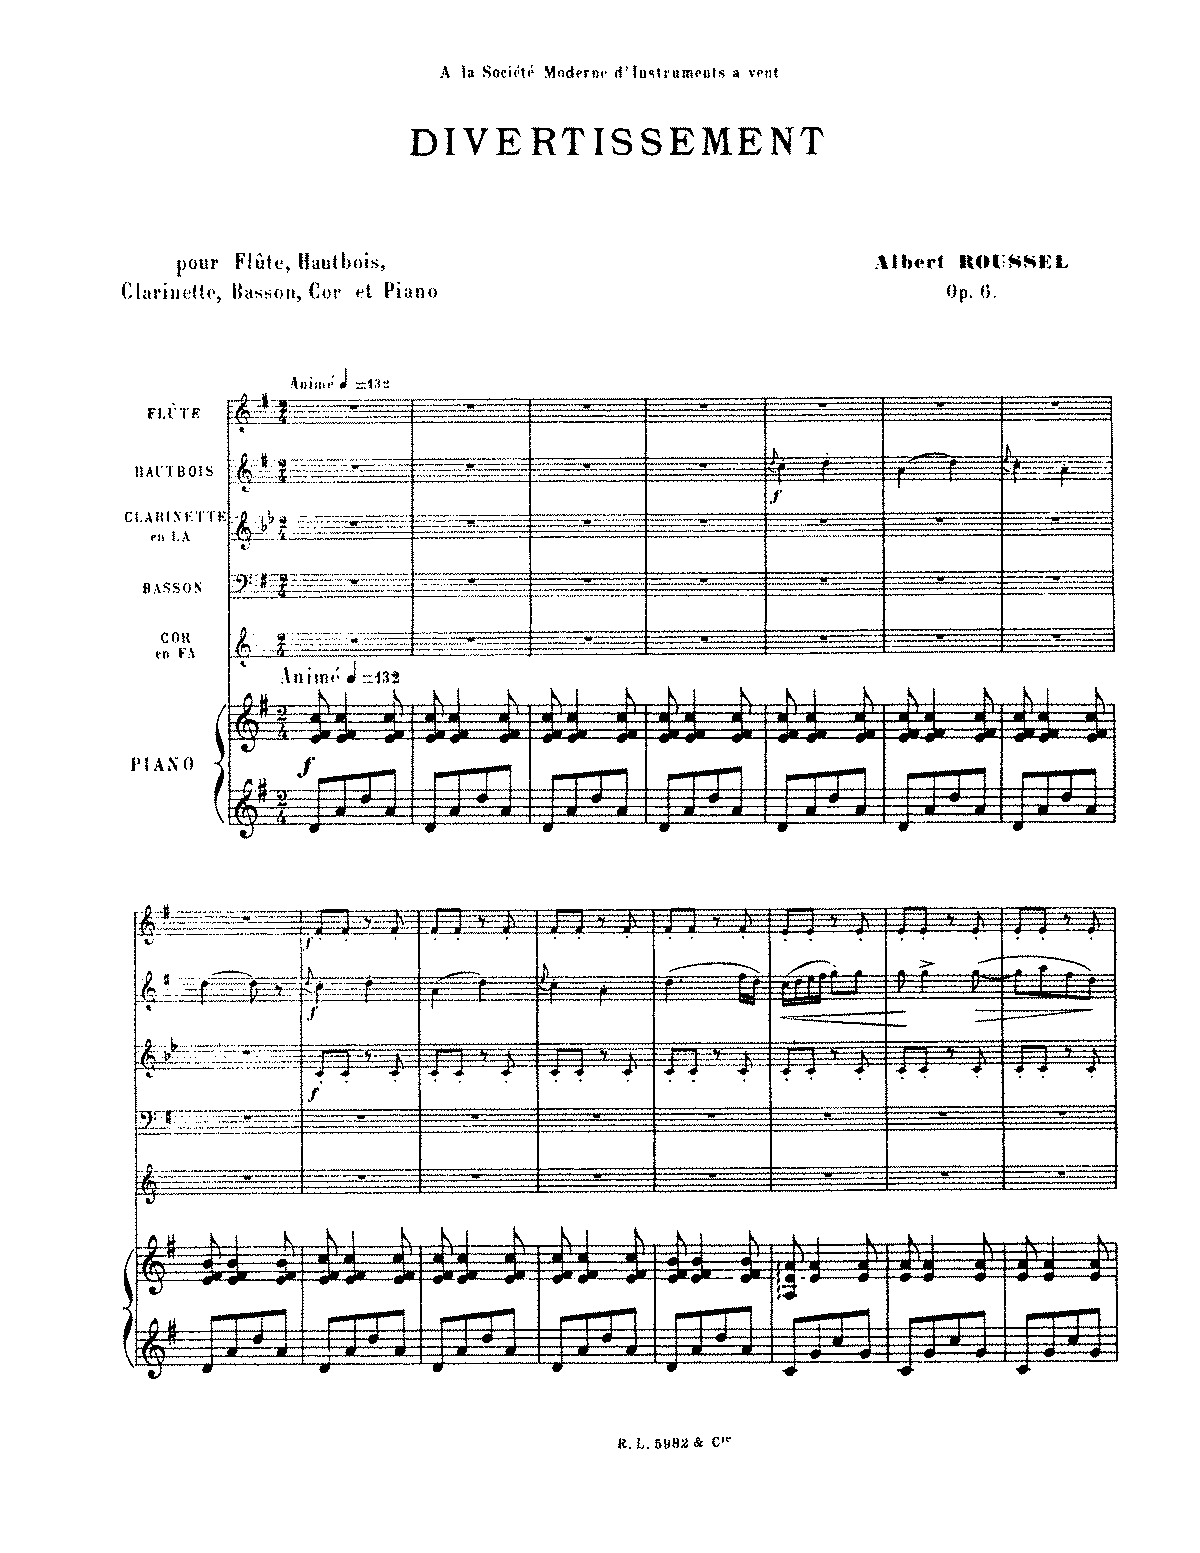 Roussel - Divertissement for Flute, Oboe, Clarinet, Bassoon, Horn & Piano Op. 6.pdf